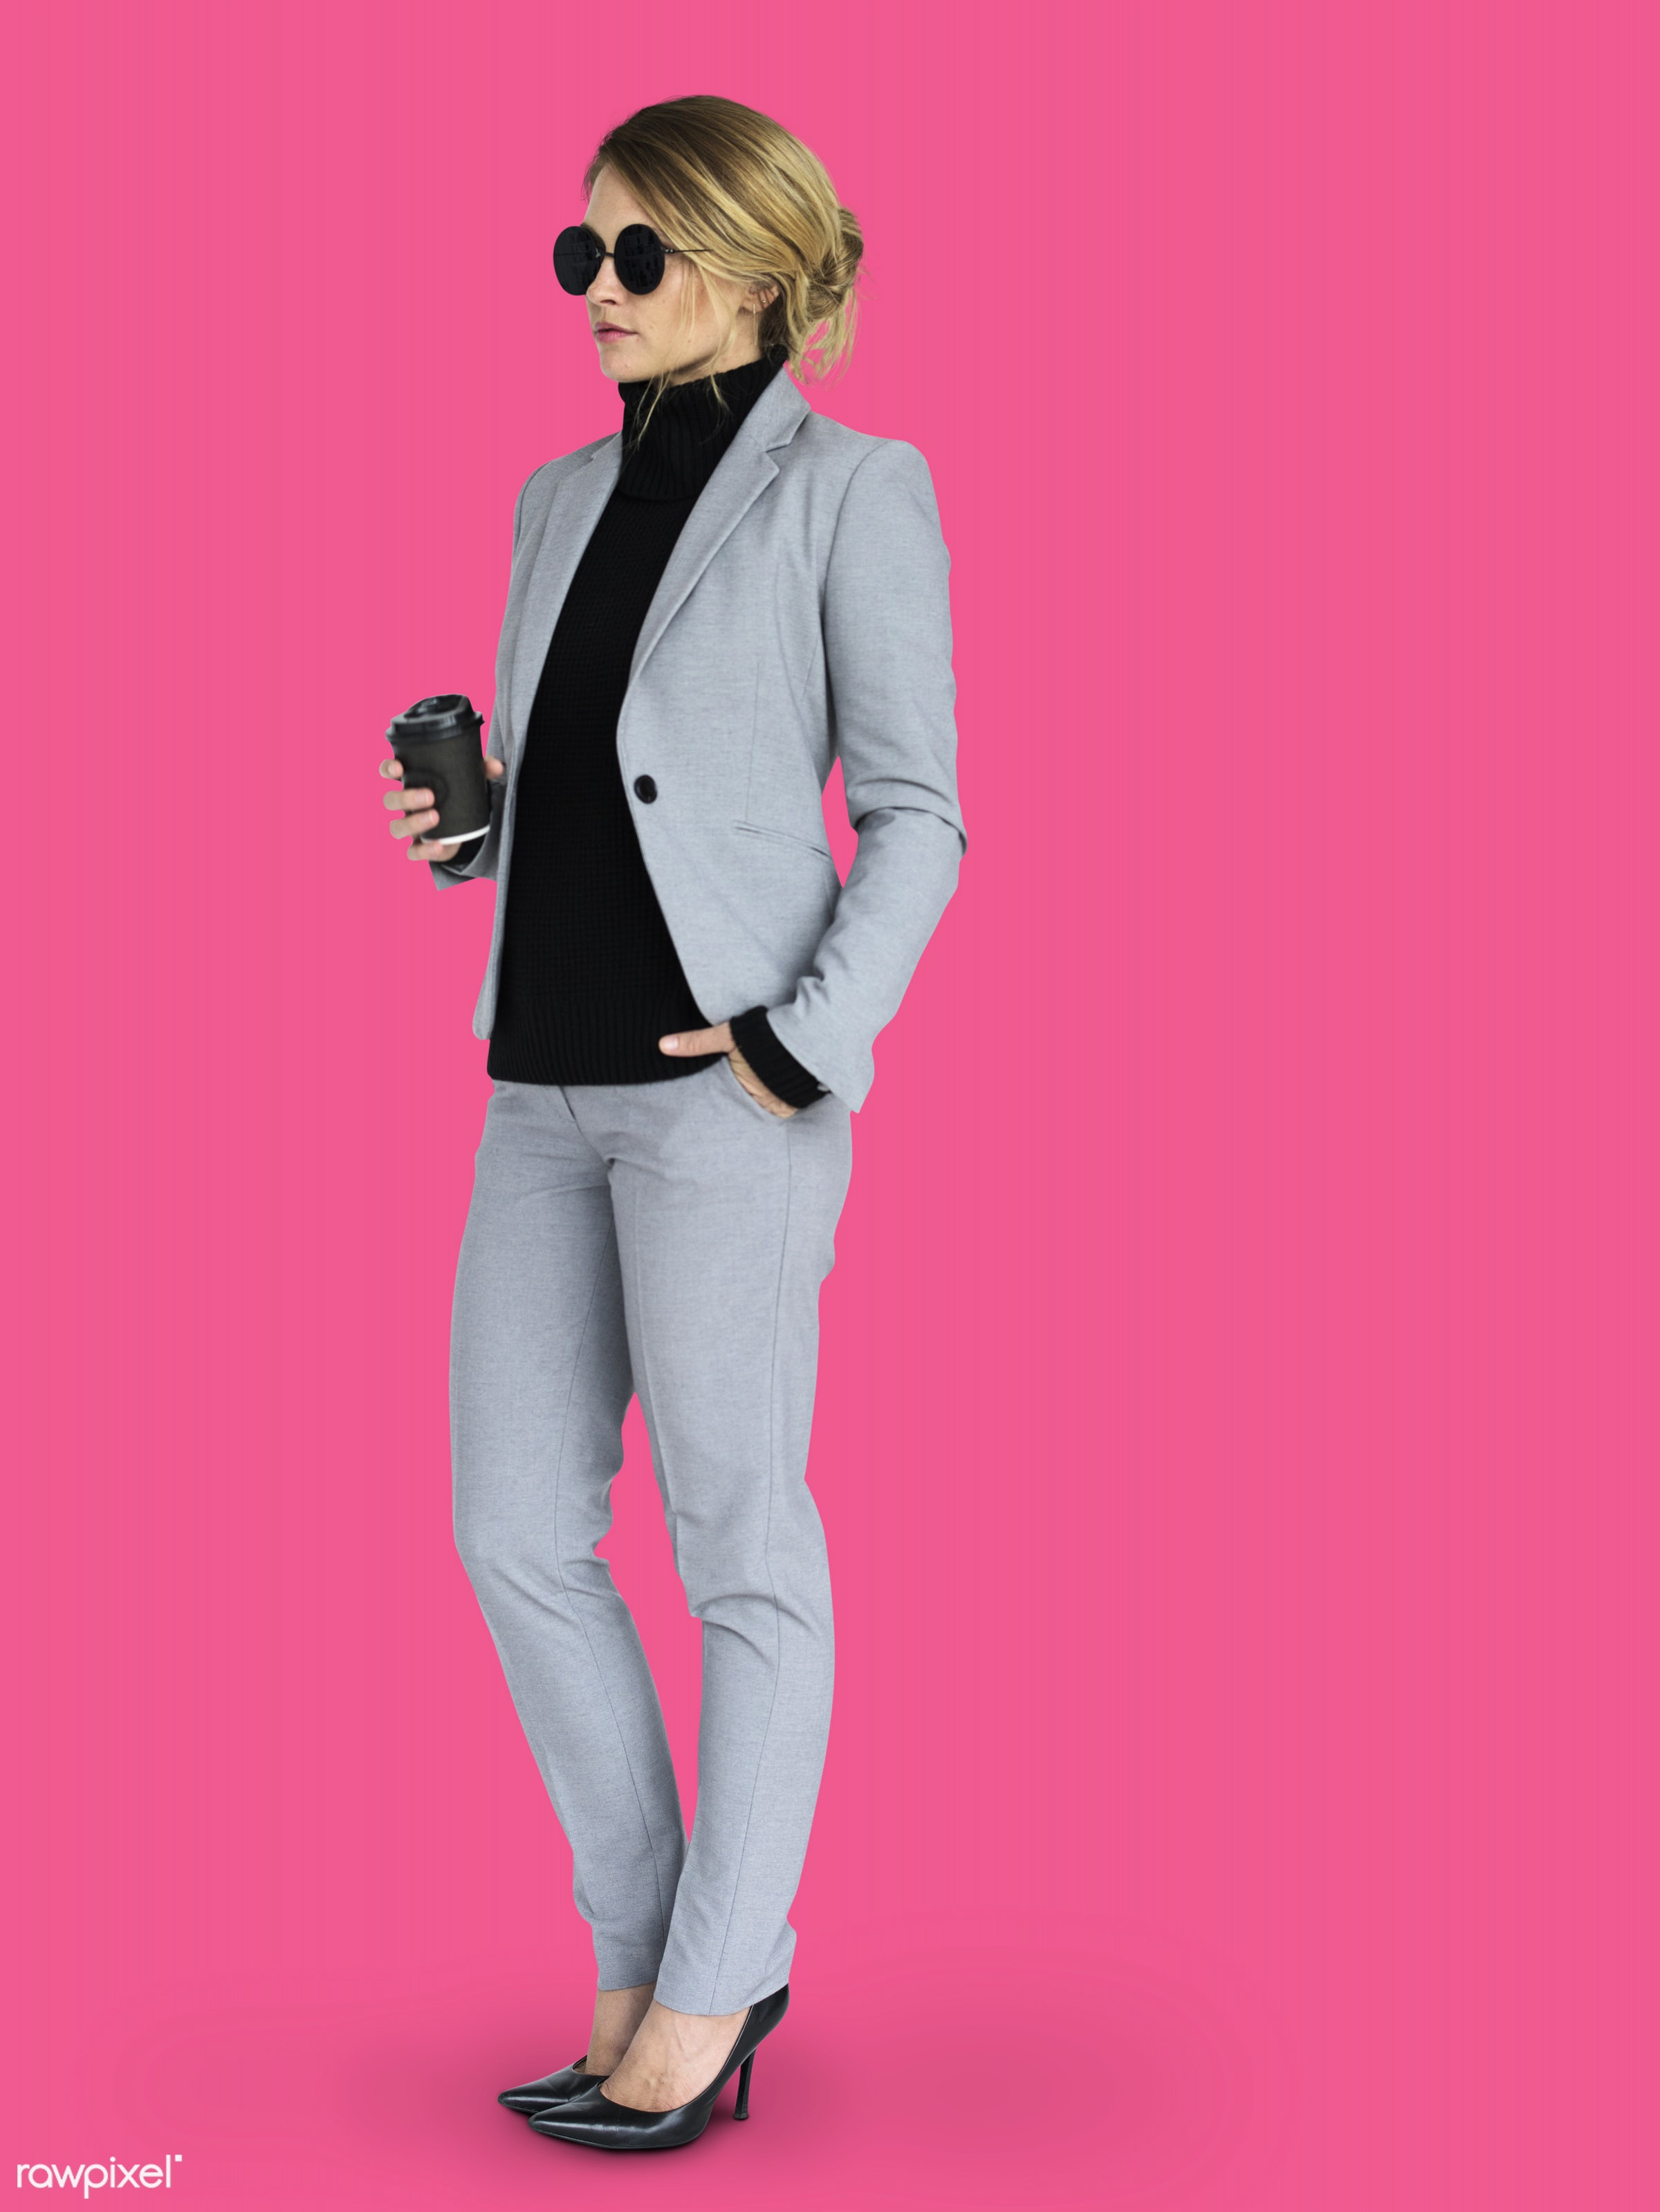 expression, studio, person, business wear, holding, people, caucasian, girl, woman, wearing sunglasses, positive, holding...